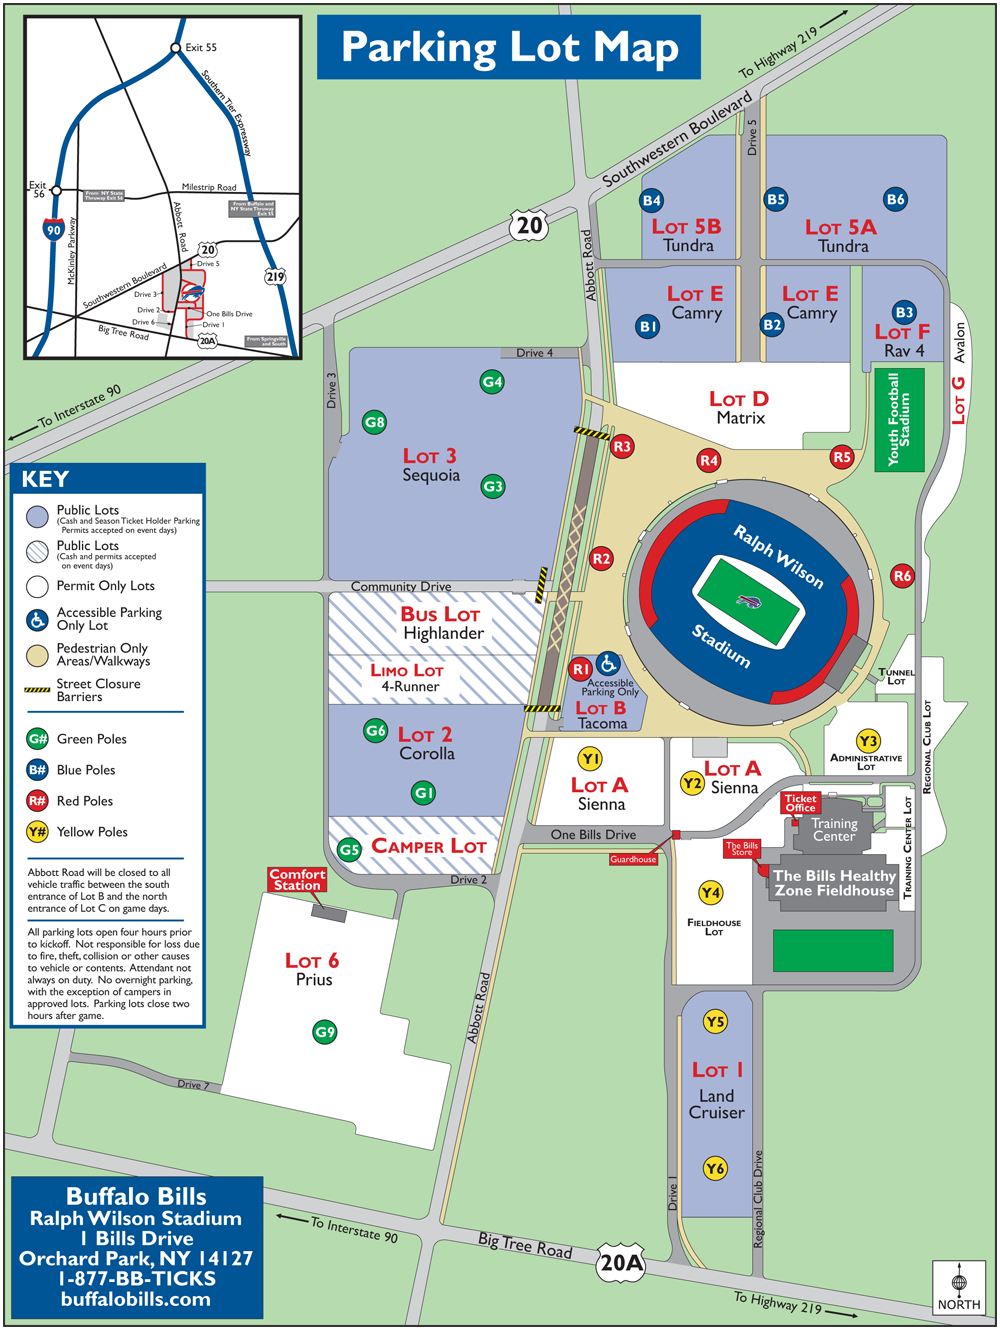 Stadium Maps | Buffalo Bills, Ralph Wilson Stadium, 1 Bills Drive ...